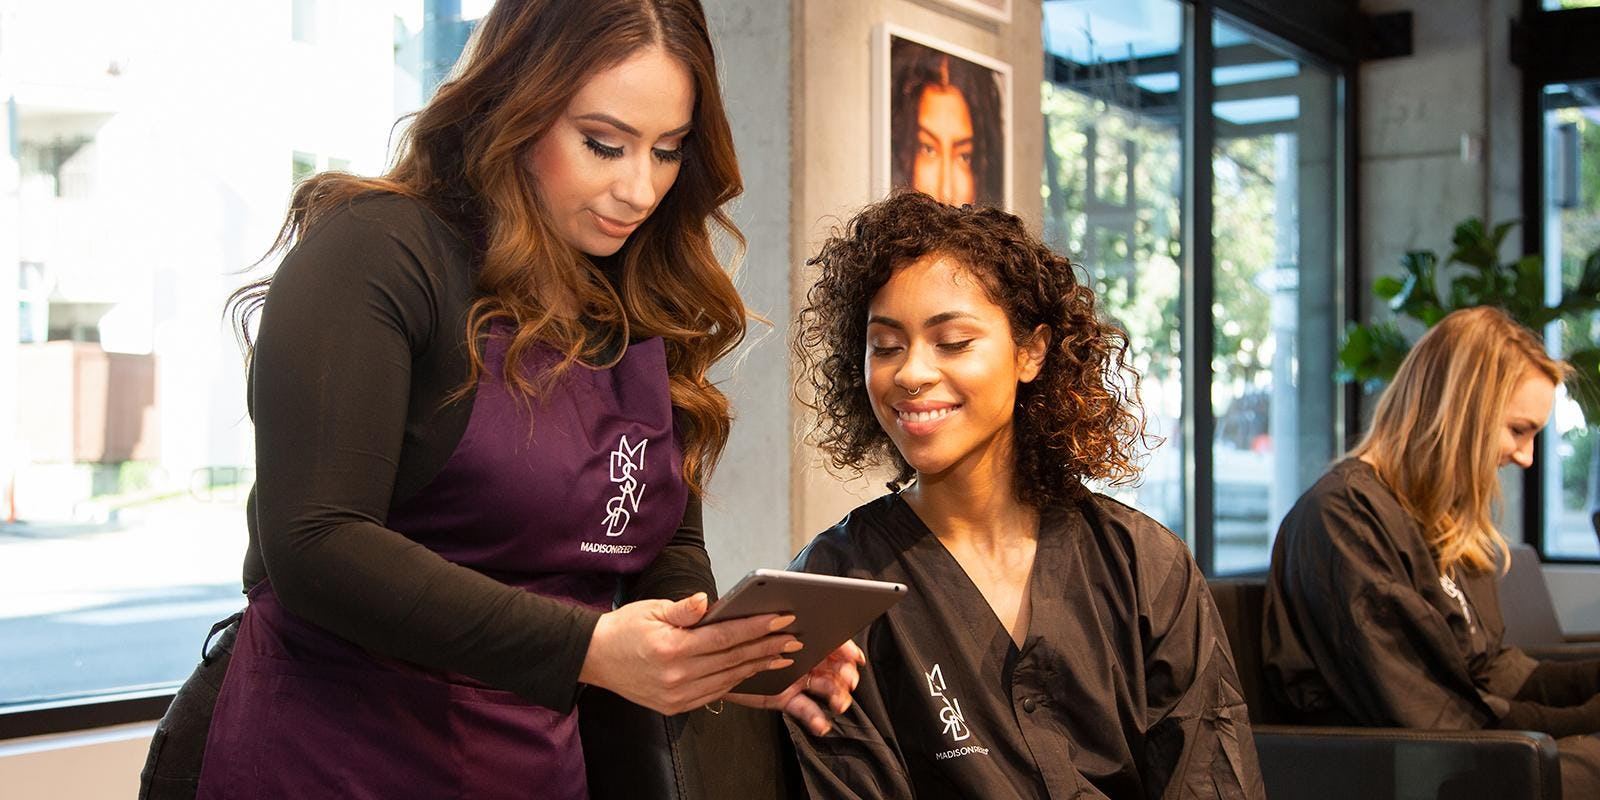 How to behave at a salon